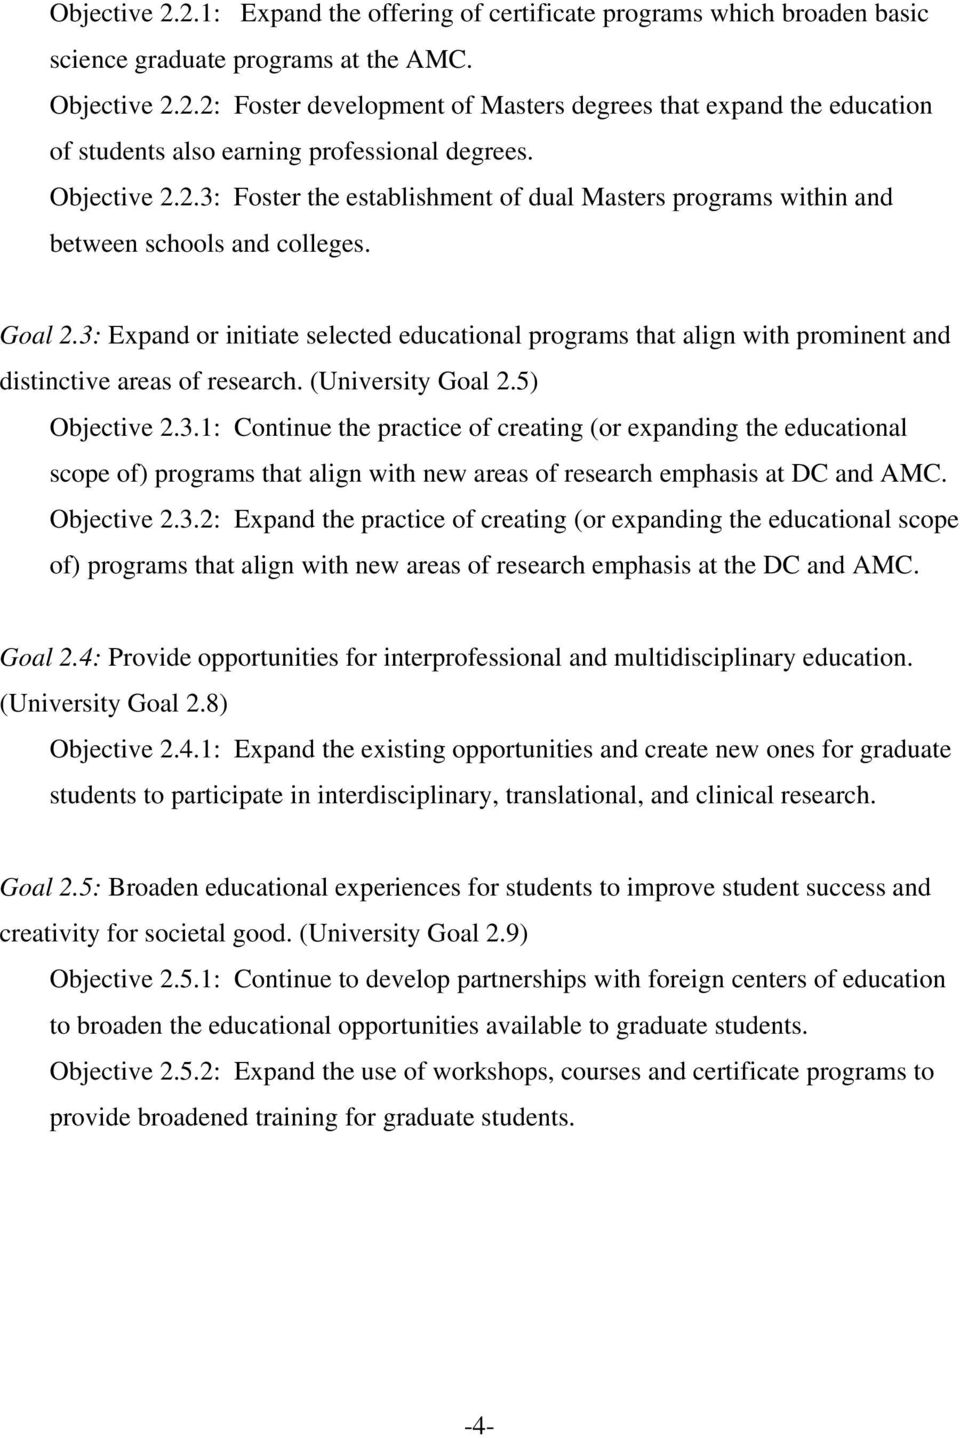 3: Expand or initiate selected educational programs that align with prominent and distinctive areas of research. (University Goal 2.5) Objective 2.3.1: Continue the practice of creating (or expanding the educational scope of) programs that align with new areas of research emphasis at DC and AMC.